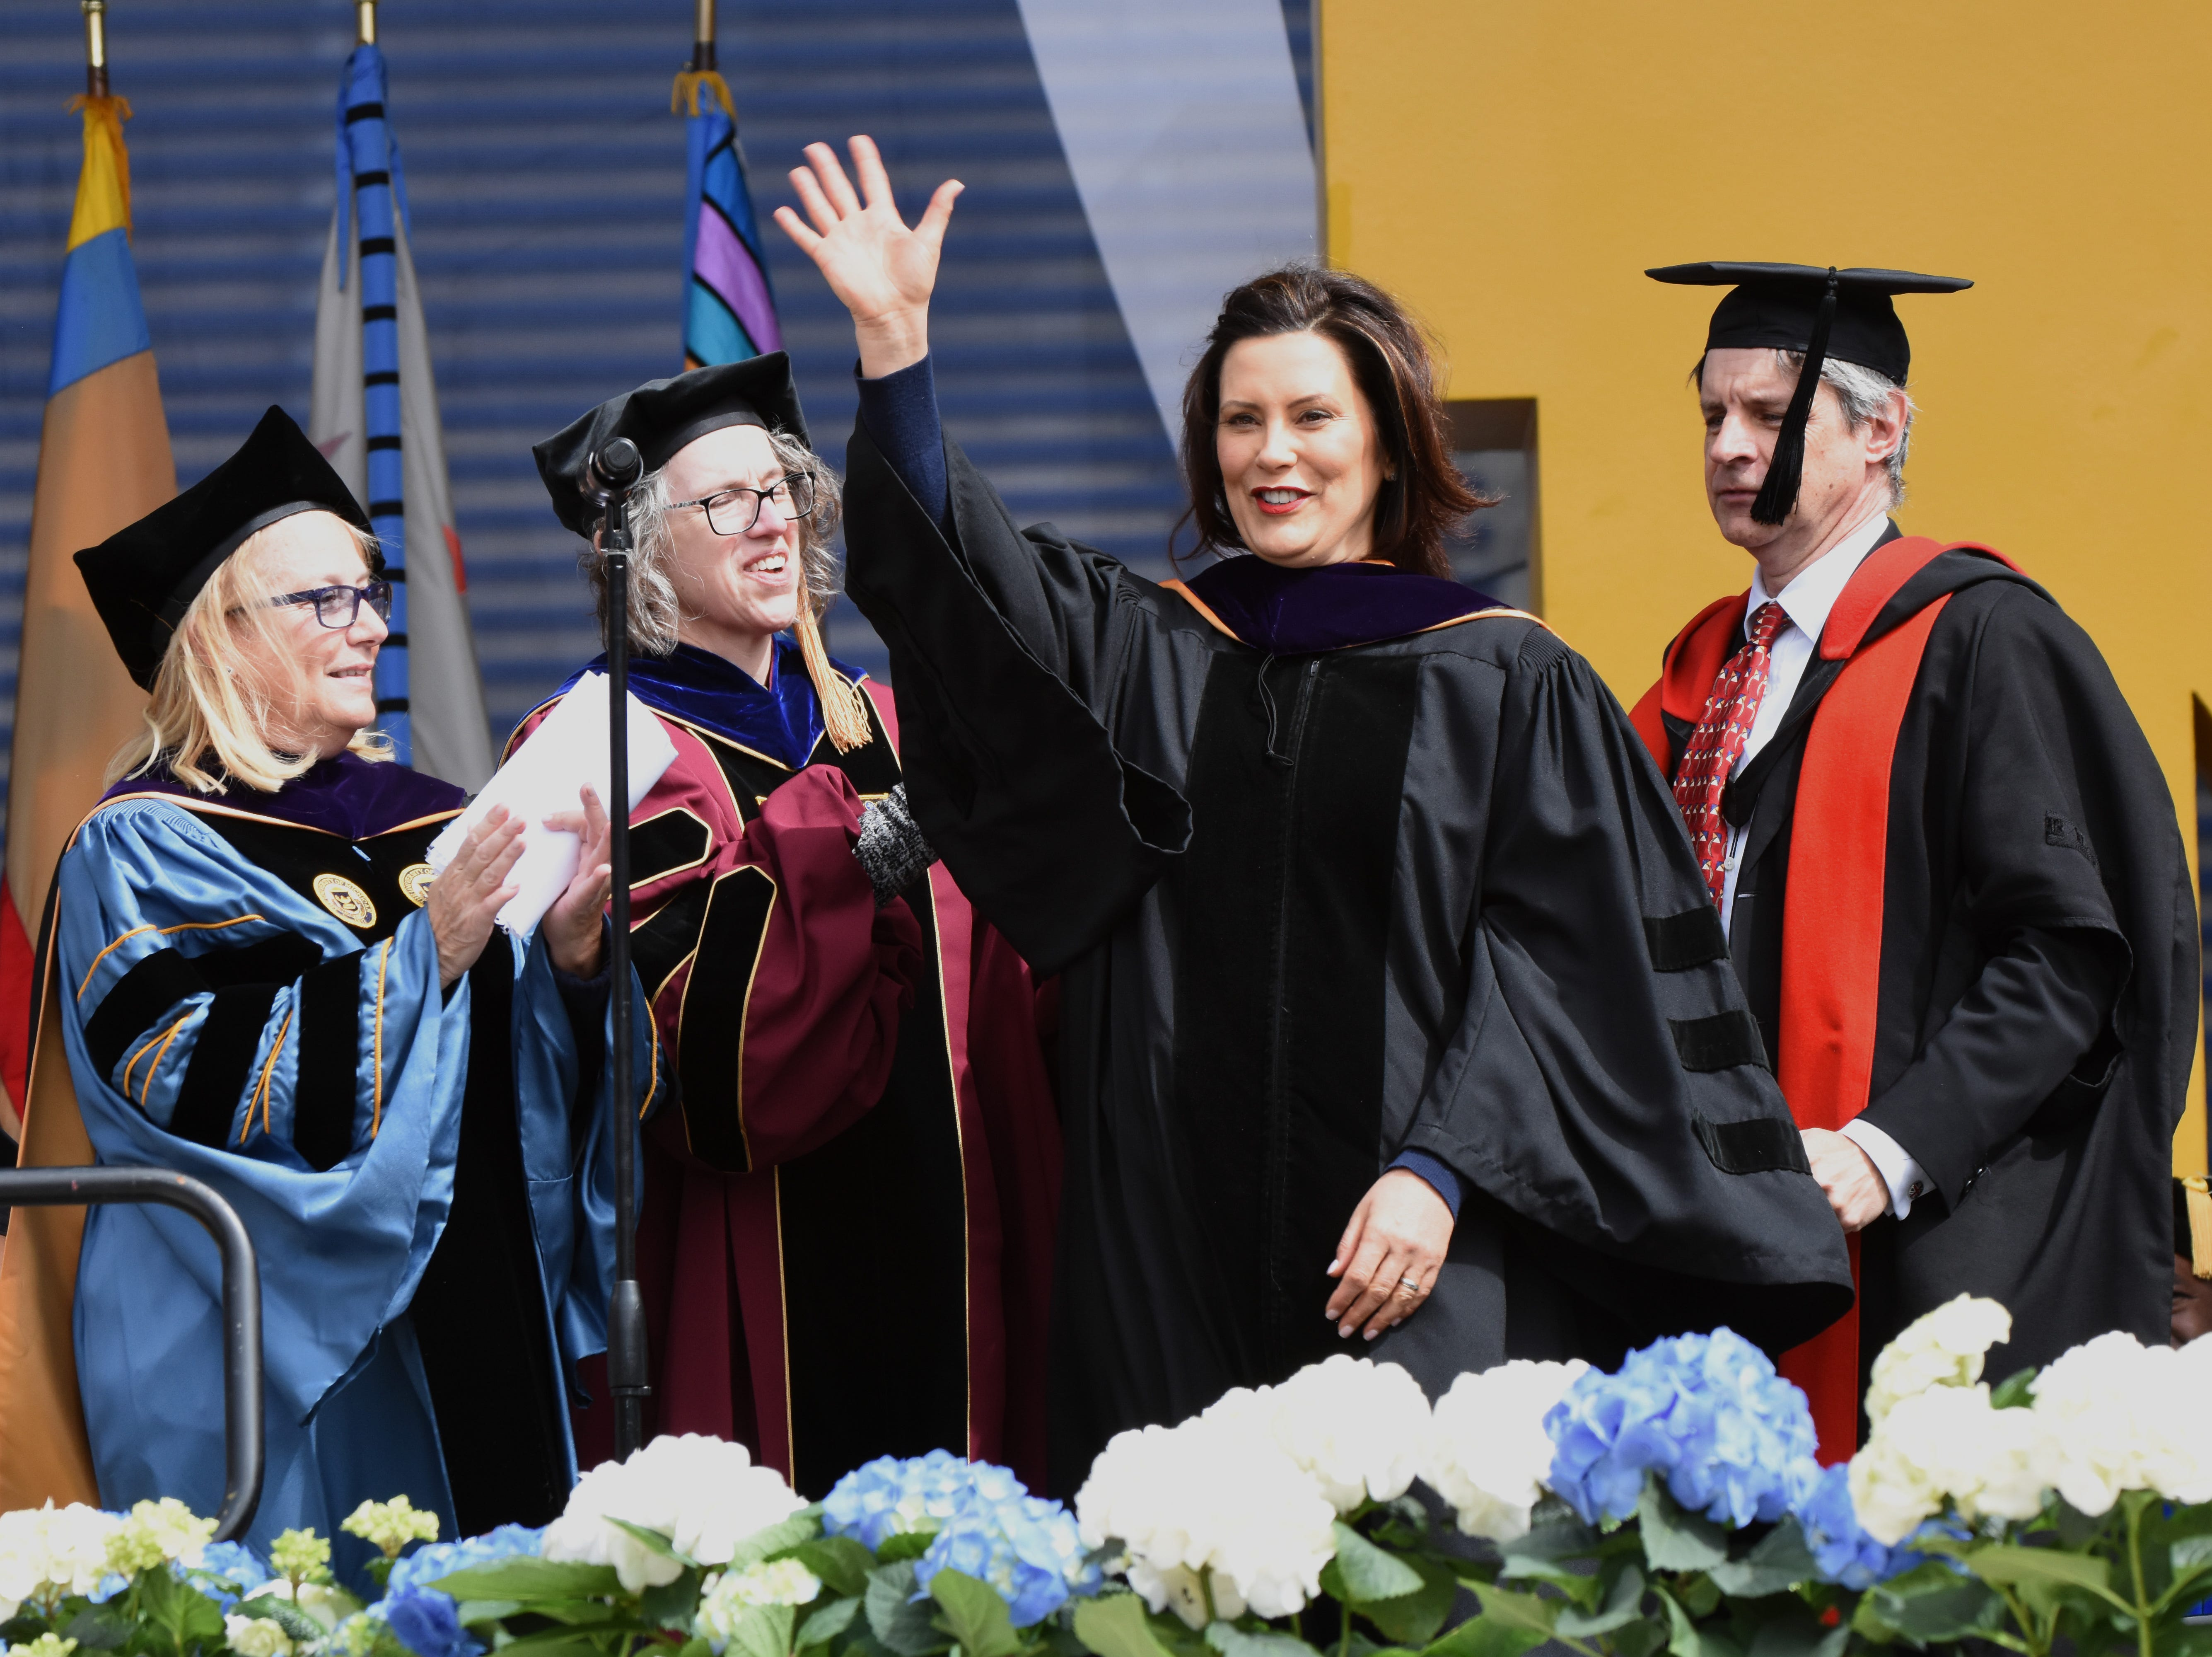 Governor Gretchen Whitmer reacts after receiving an honorary degree.